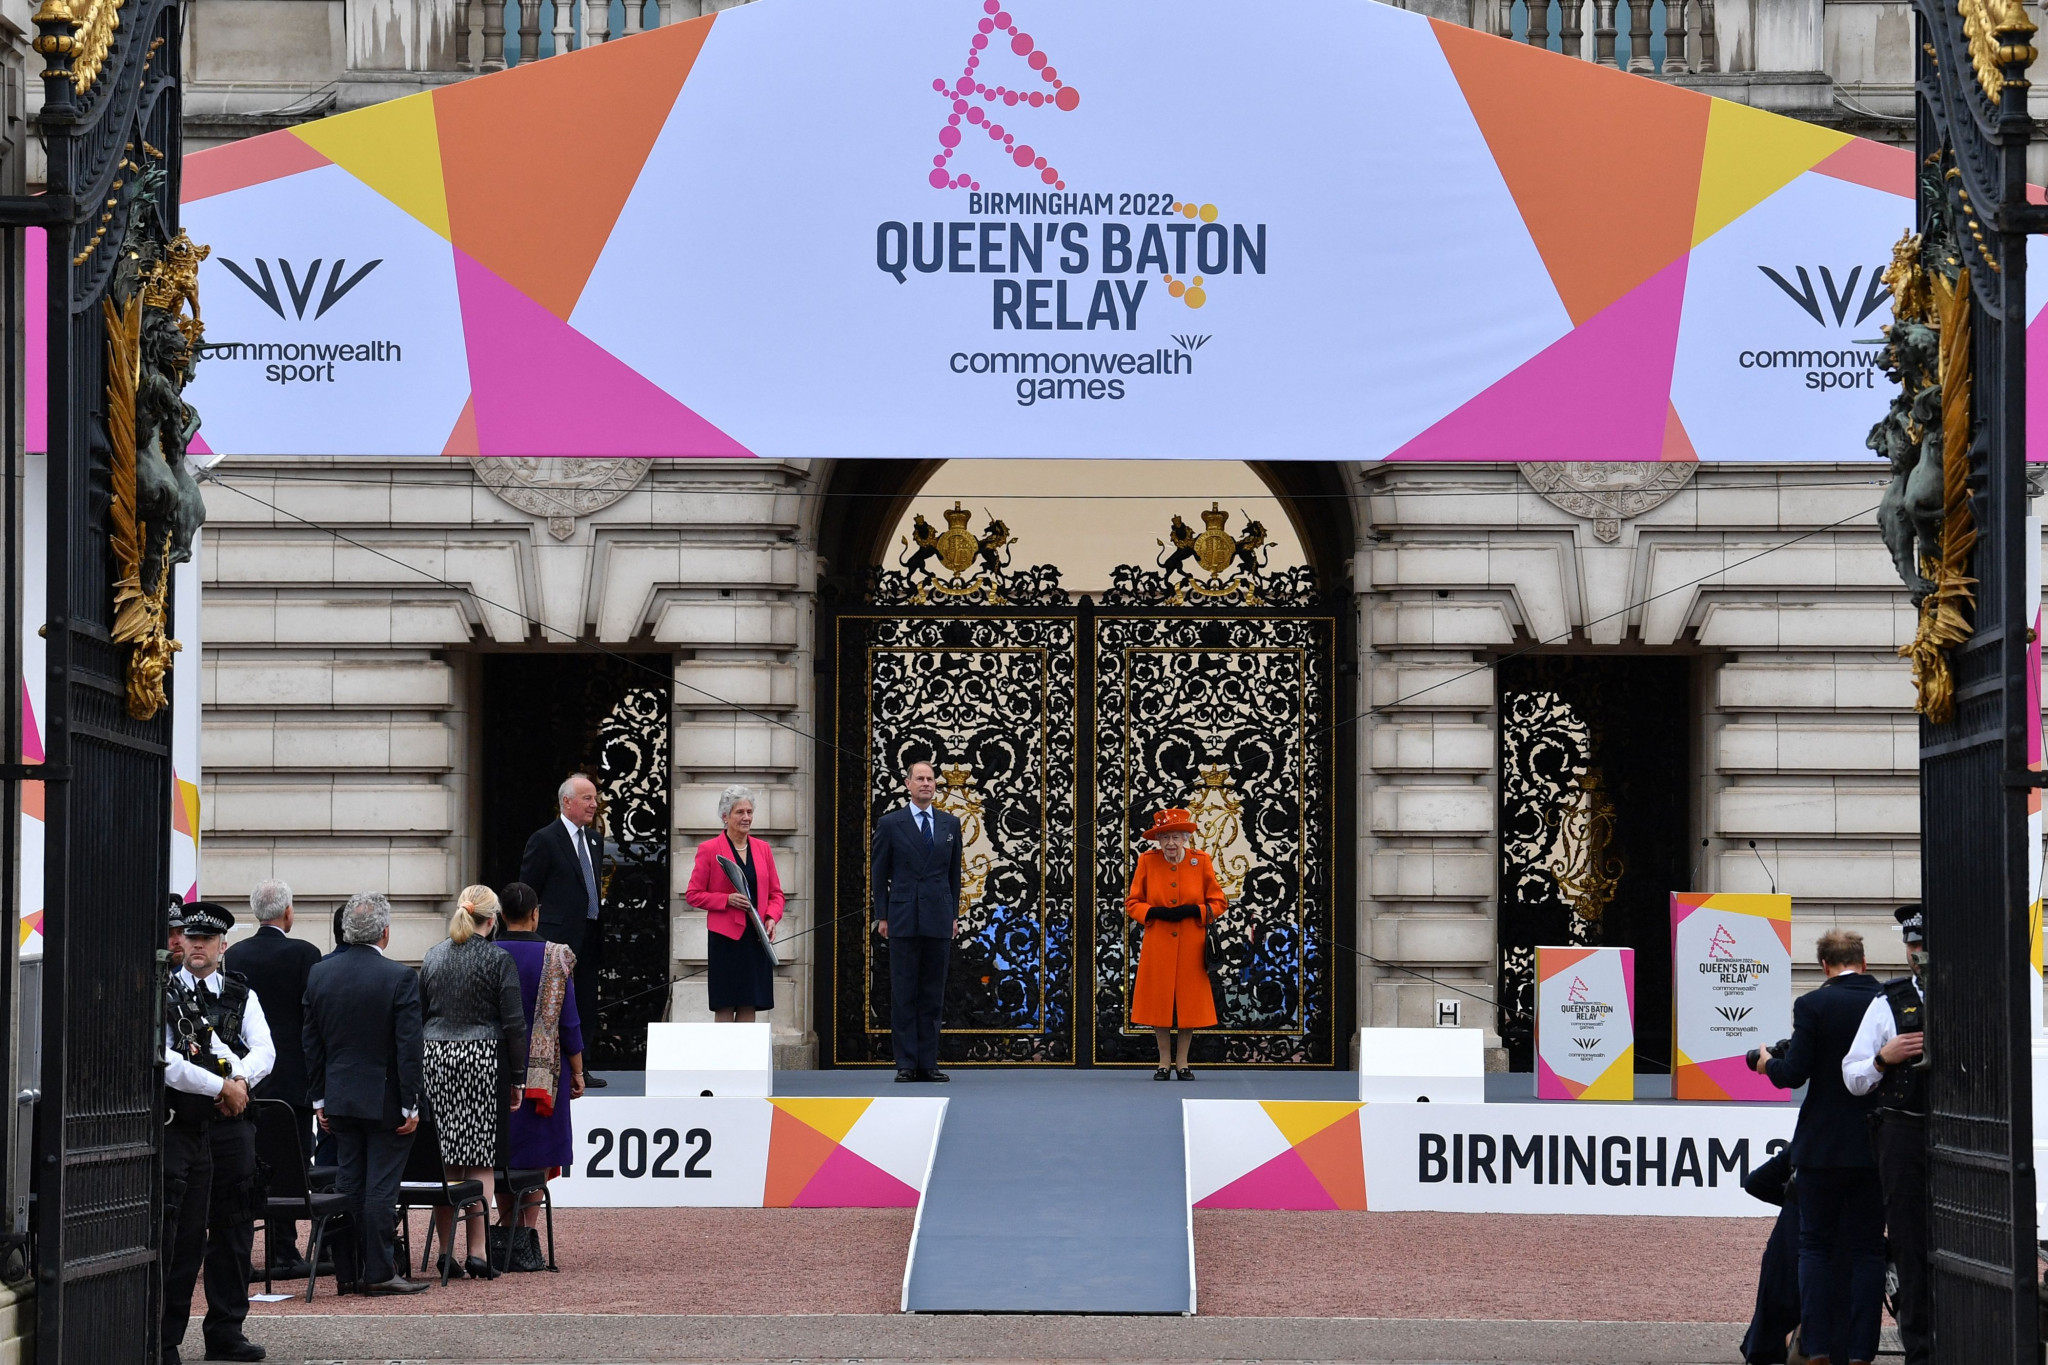 Cox first to carry Queen's Baton as Birmingham 2022 Relay launched at Buckingham Palace